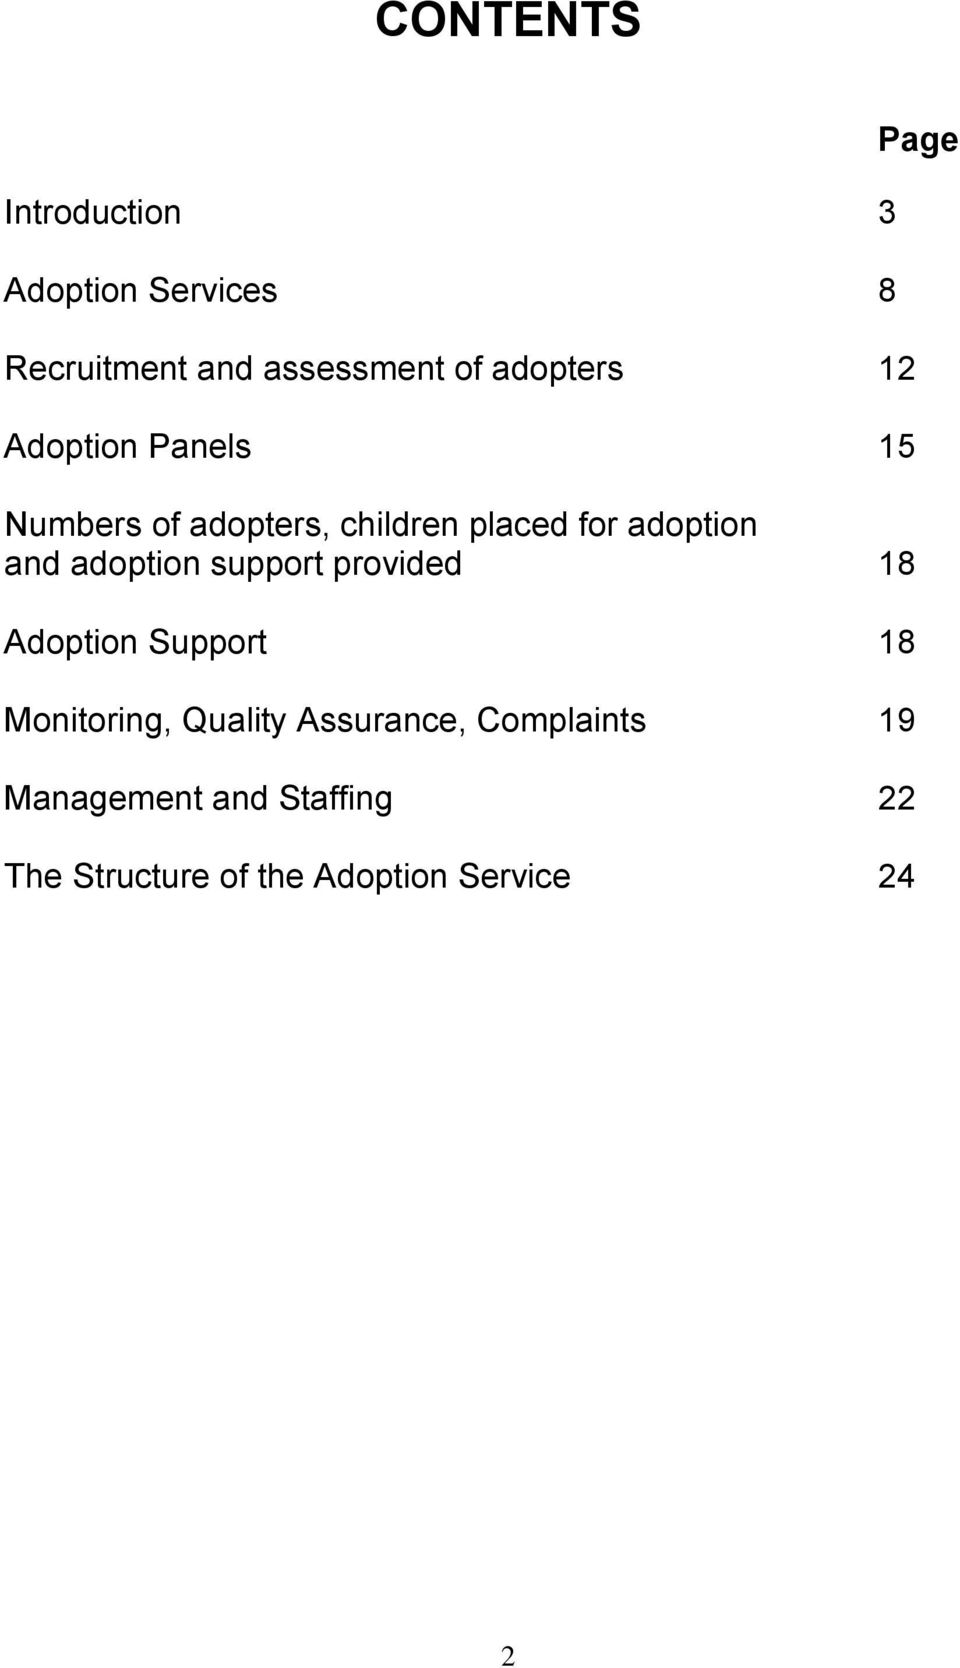 and adoption support provided 18 Adoption Support 18 Monitoring, Quality